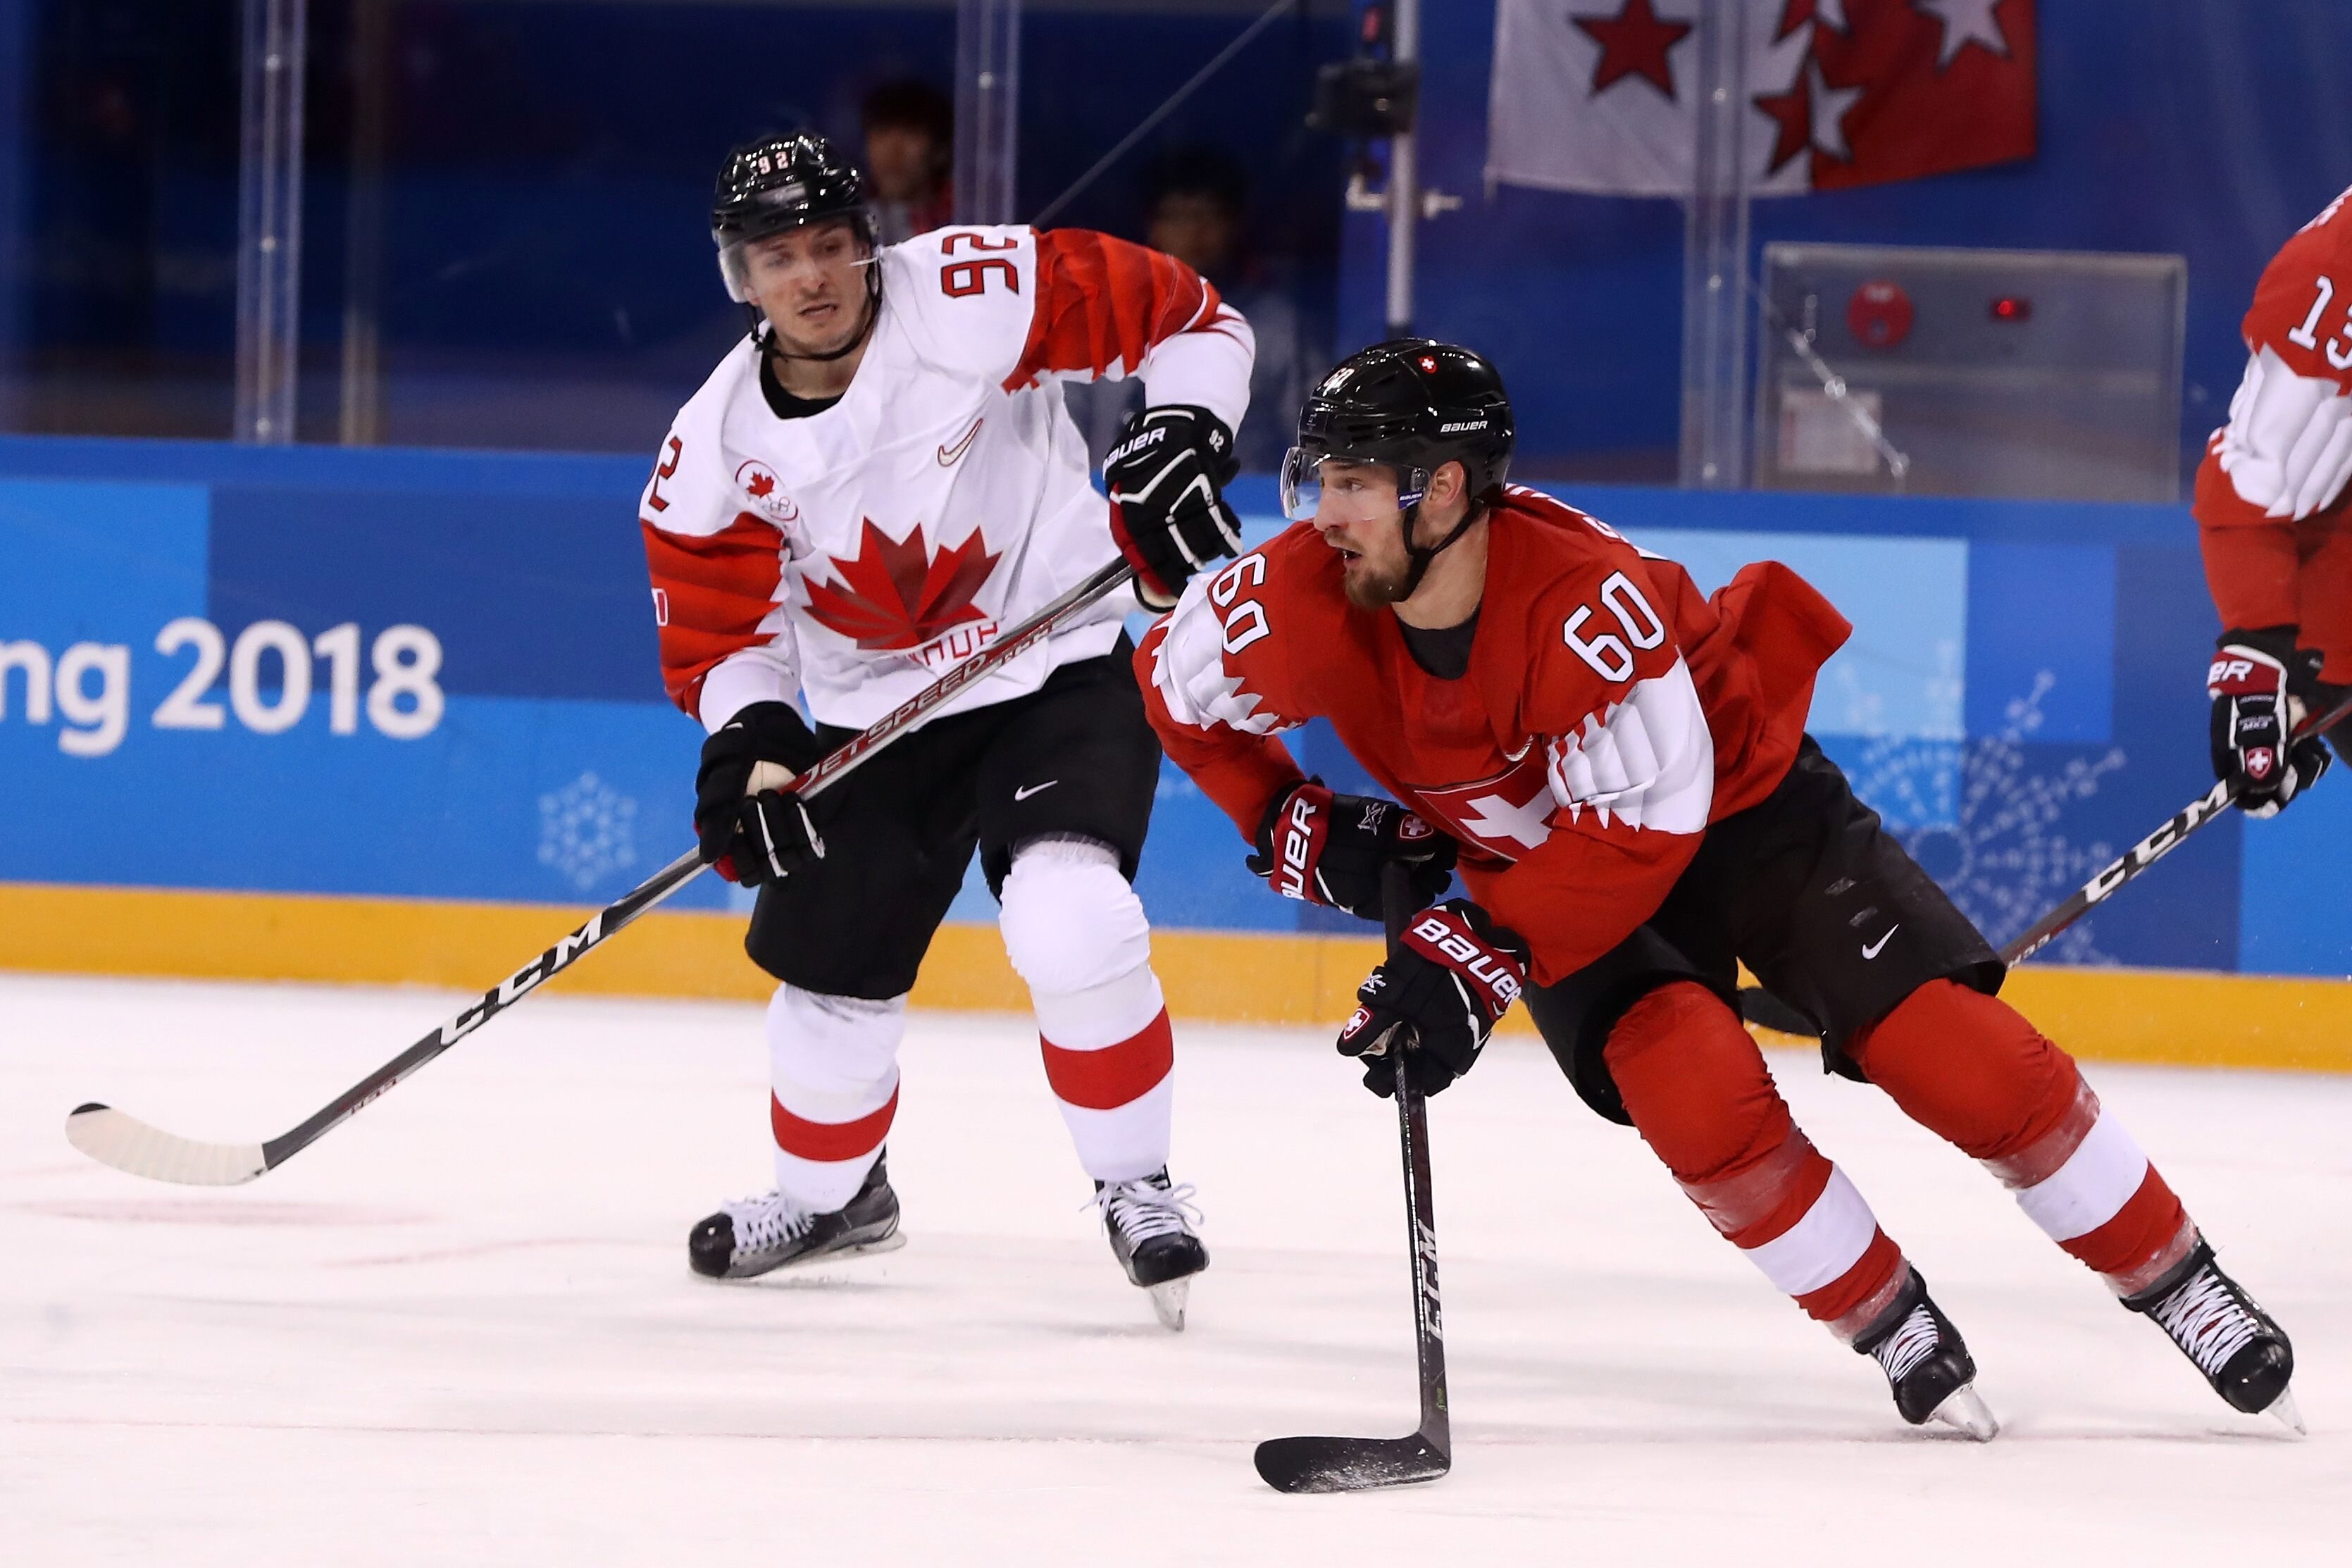 Olympics men's hockey, Canada vs. Czech Republic live ...